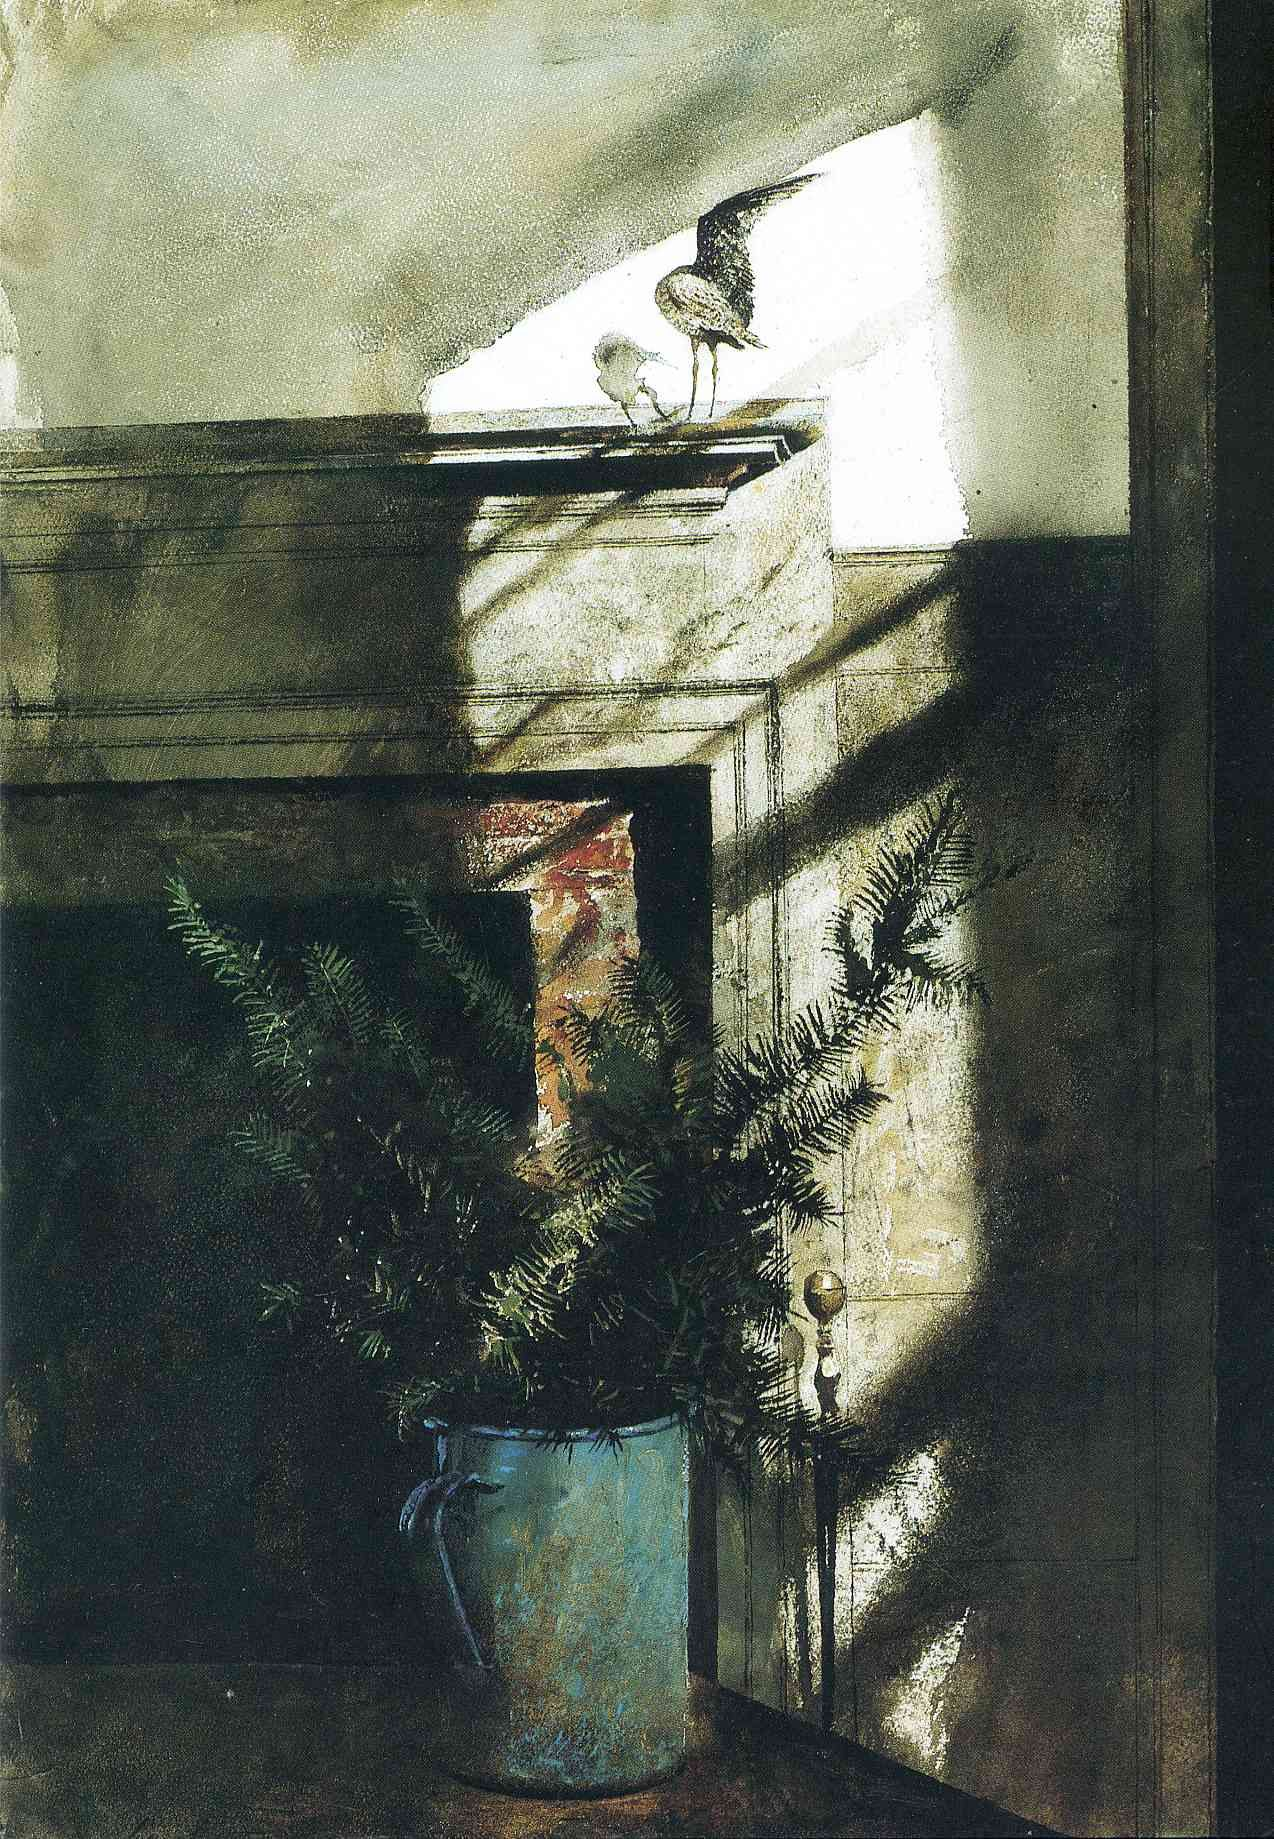 Andrew Wyeth | Andrew wyeth paintings, Andrew wyeth, Andrew wyeth art